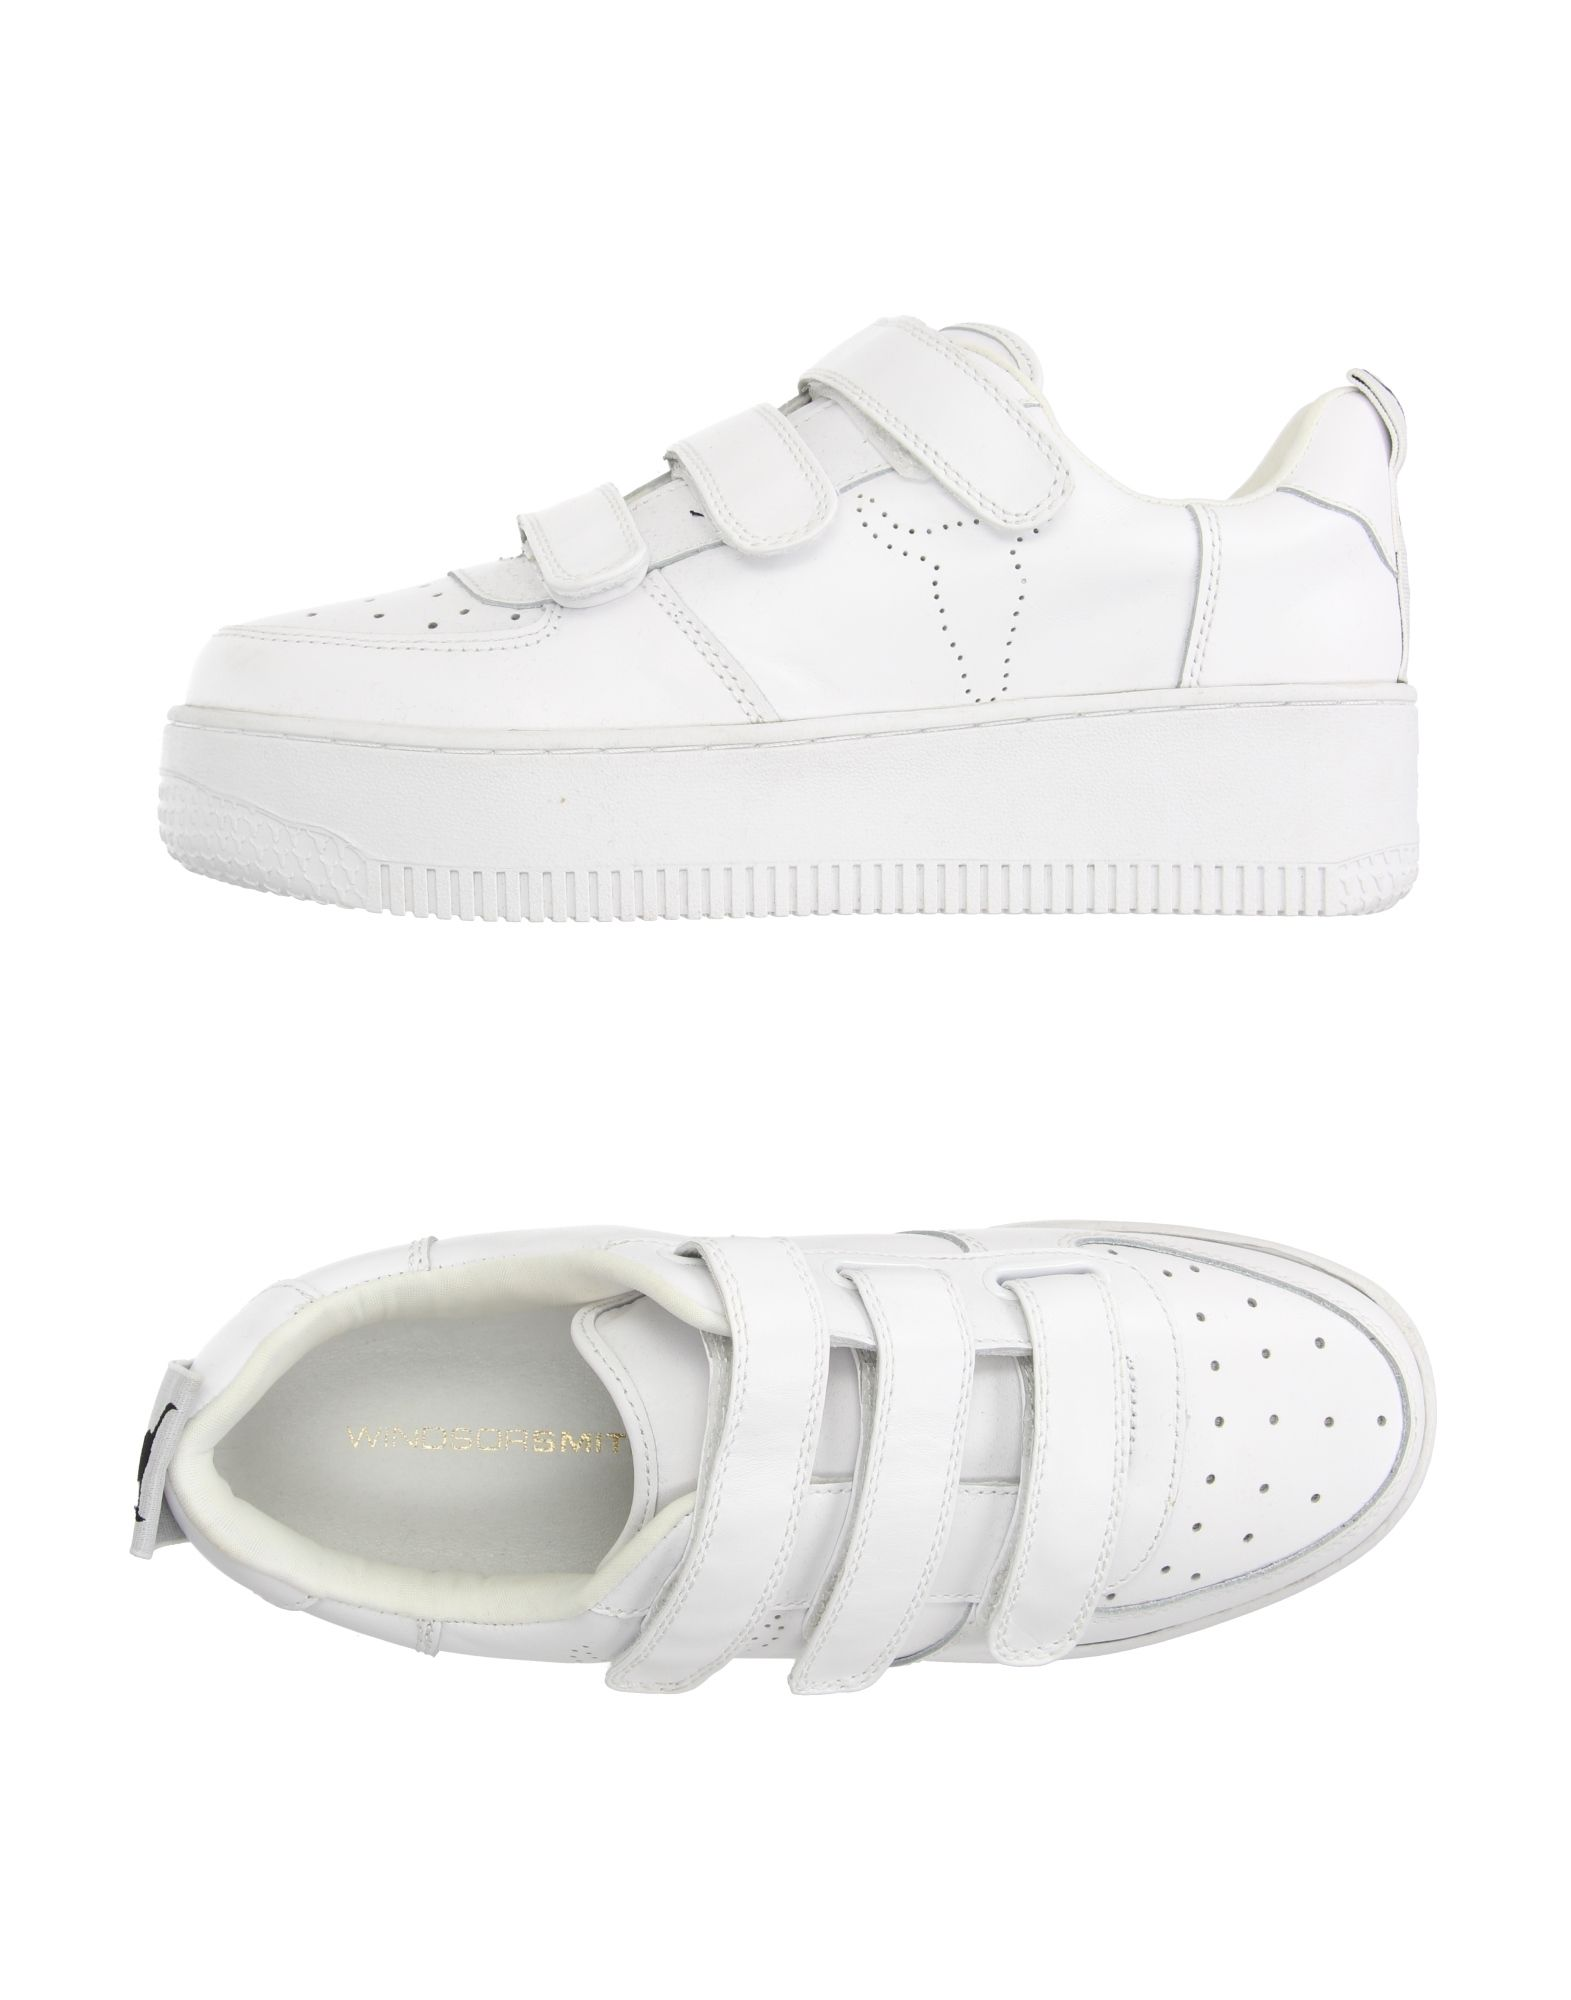 windsor smith female windsor smith sneakers